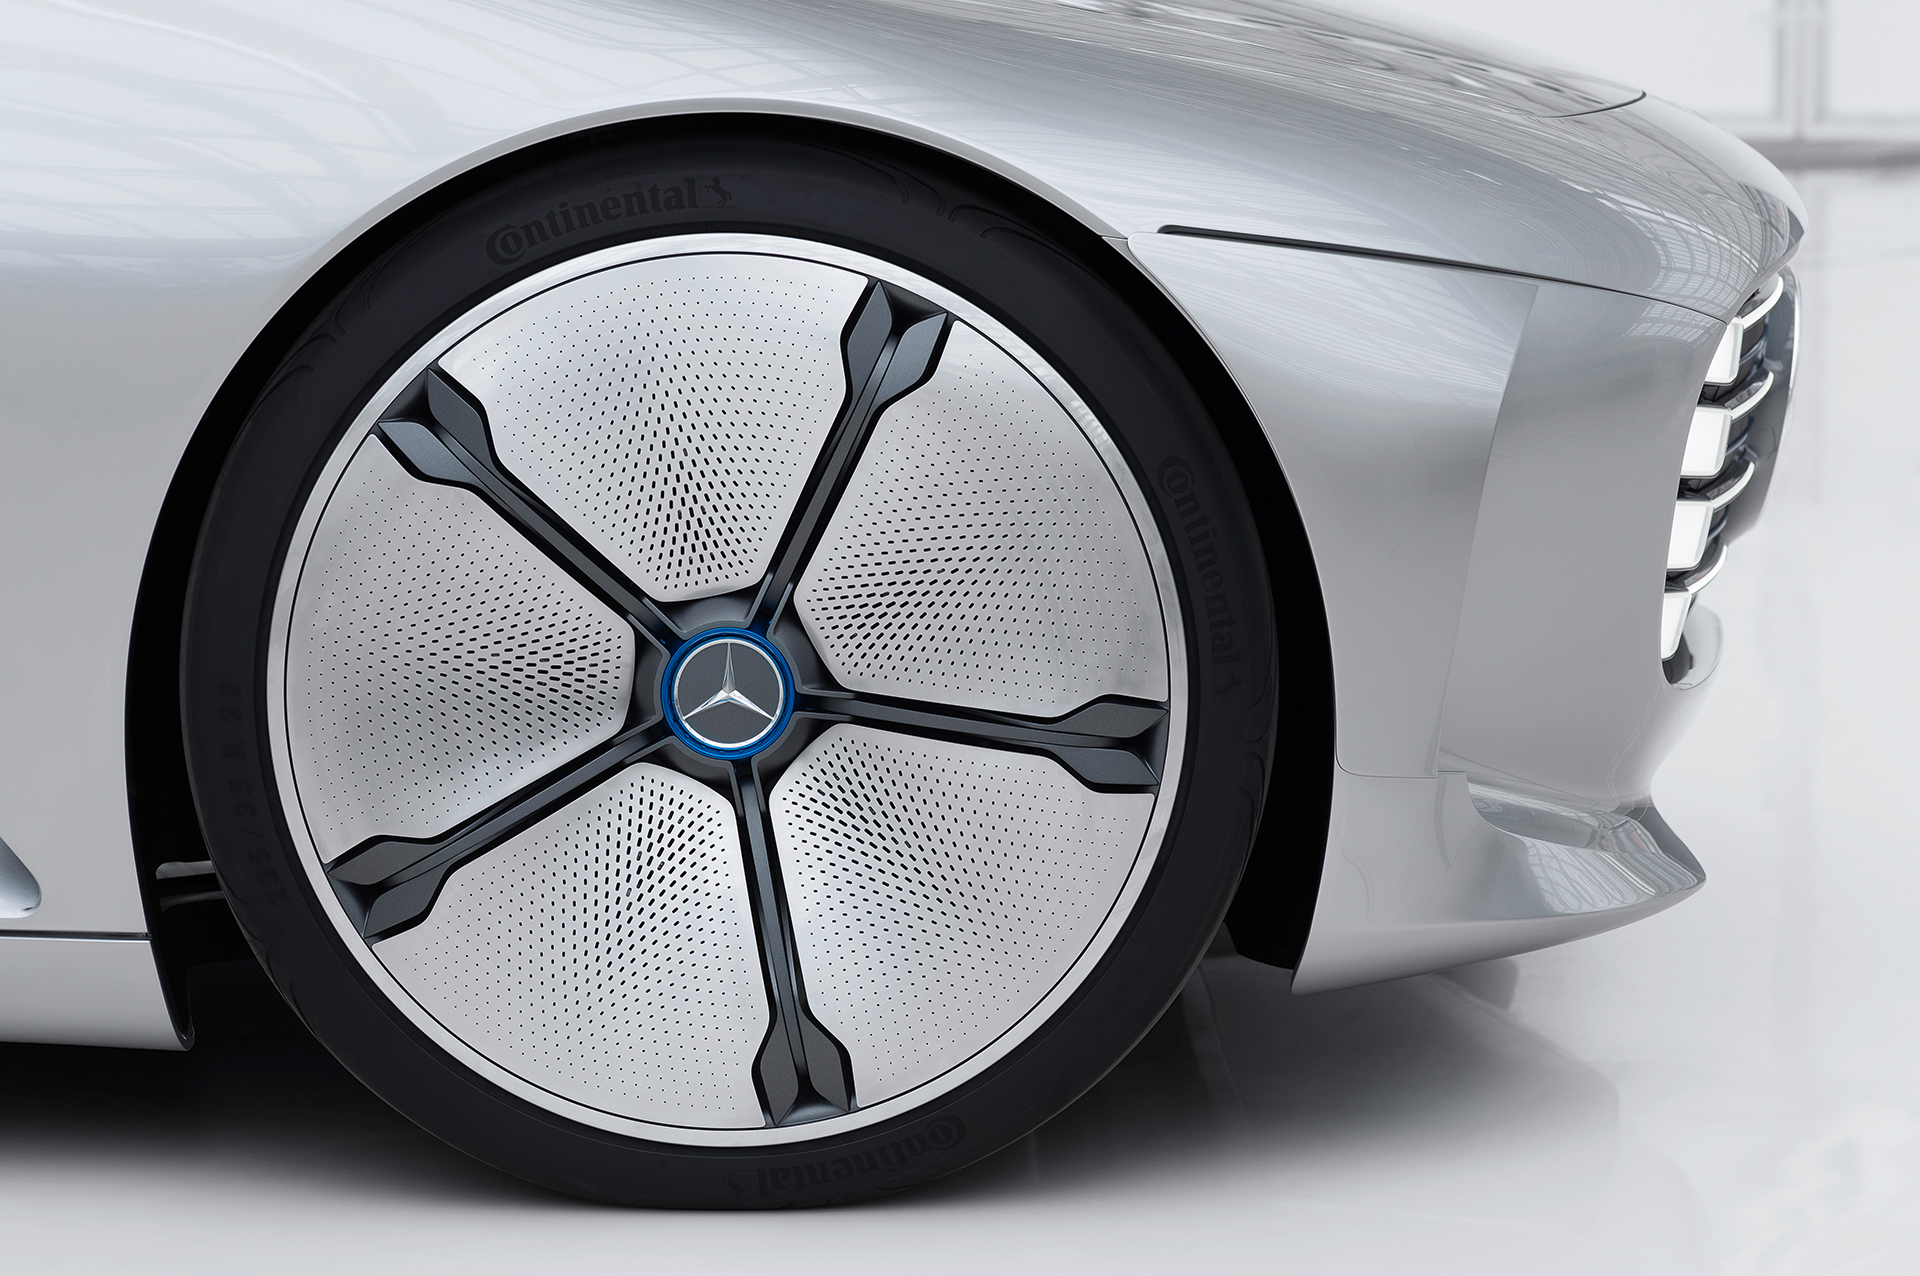 Mercedes-Benz Concept IAA - wheel / jante